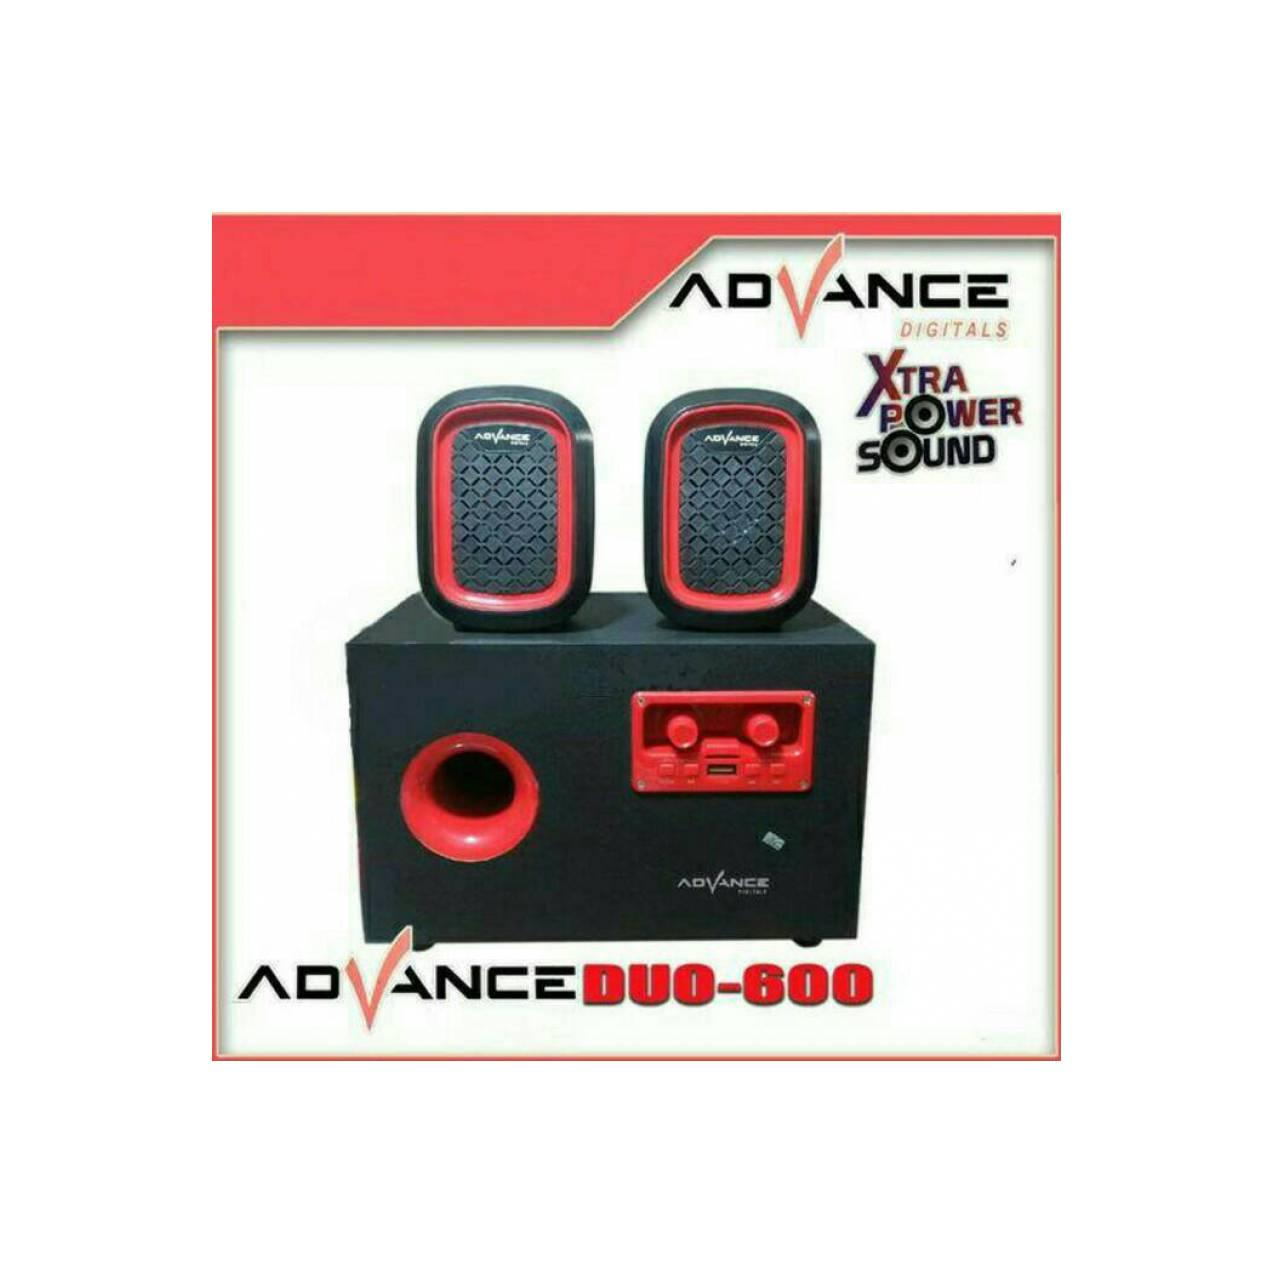 speaker ADVANCE Duo 600 xtra powet sounds termurah banget